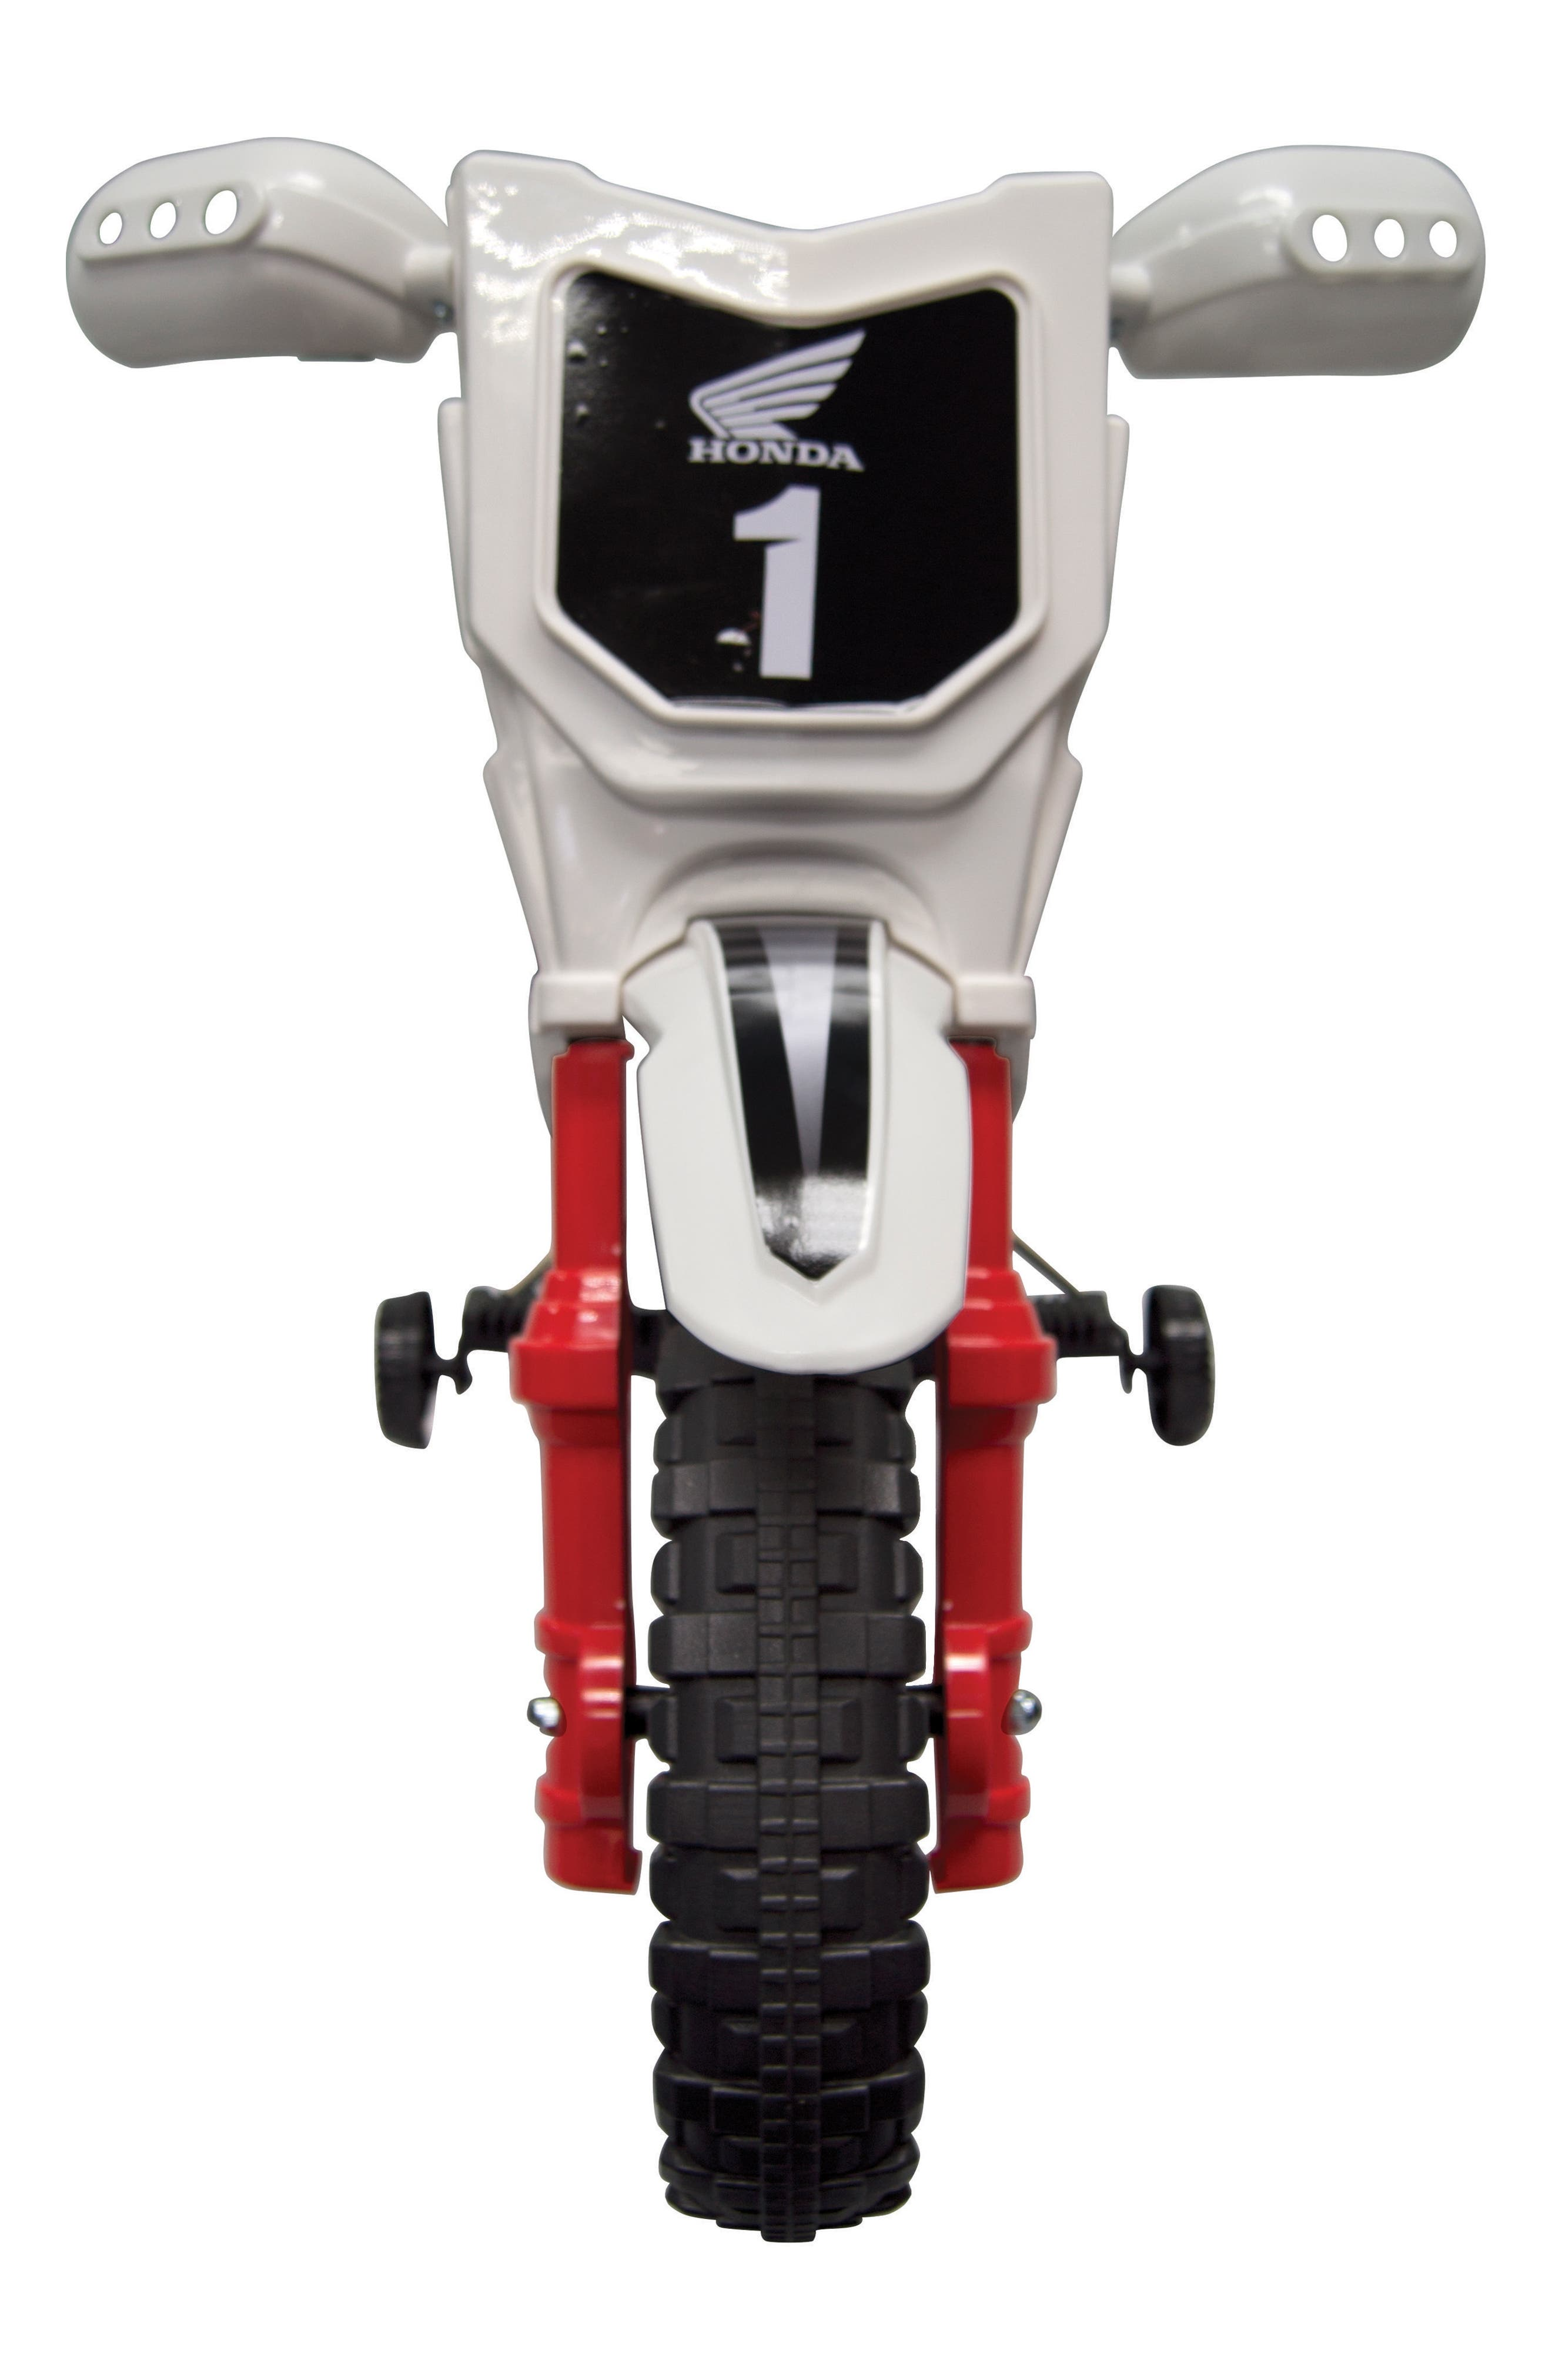 Honda Dirt Bike Ride-On Toy Motorcycle,                             Alternate thumbnail 2, color,                             White